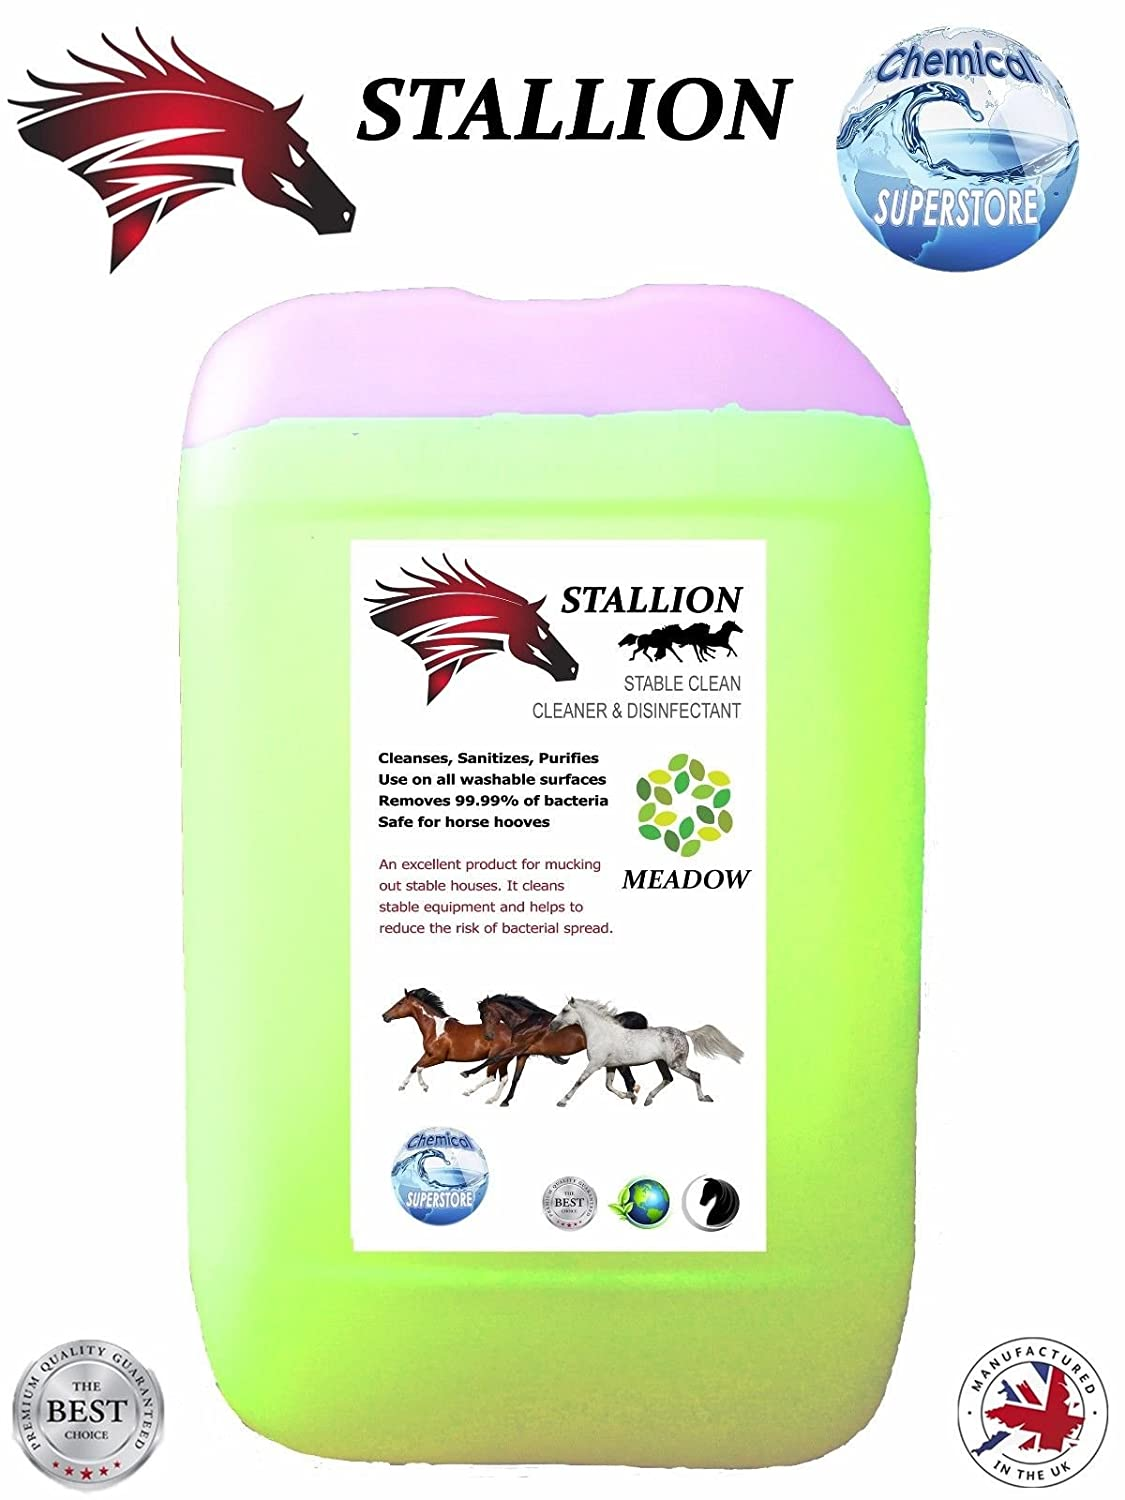 STALLION Stable Cleaner Disinfectant Deodoriser MEADOW 25L